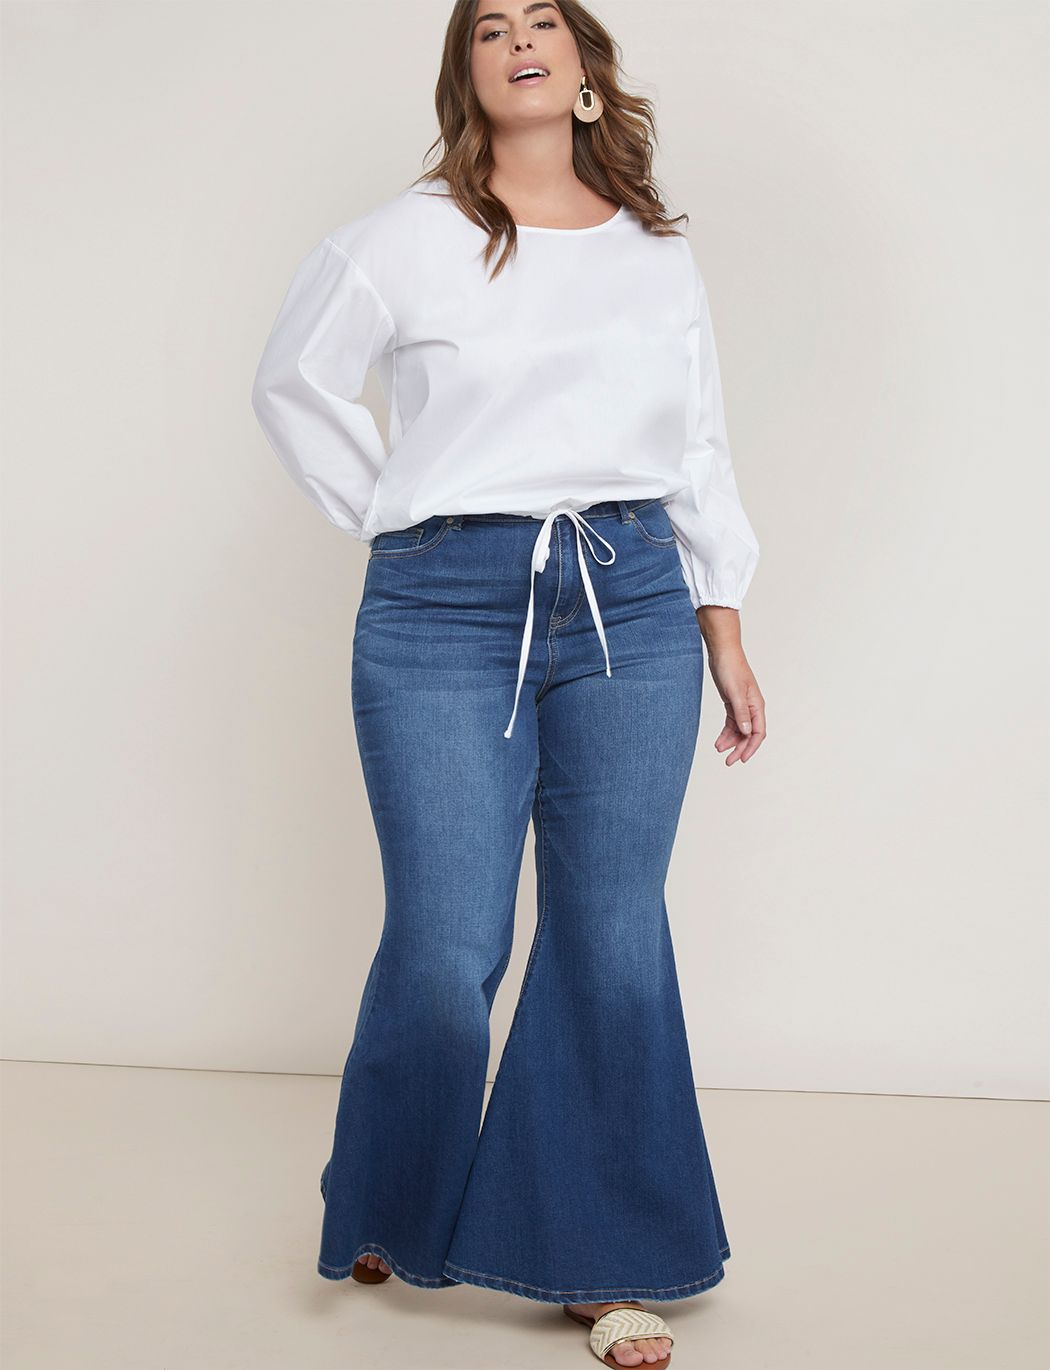 Gena Fit Bell Bottom Flare Leg Jean